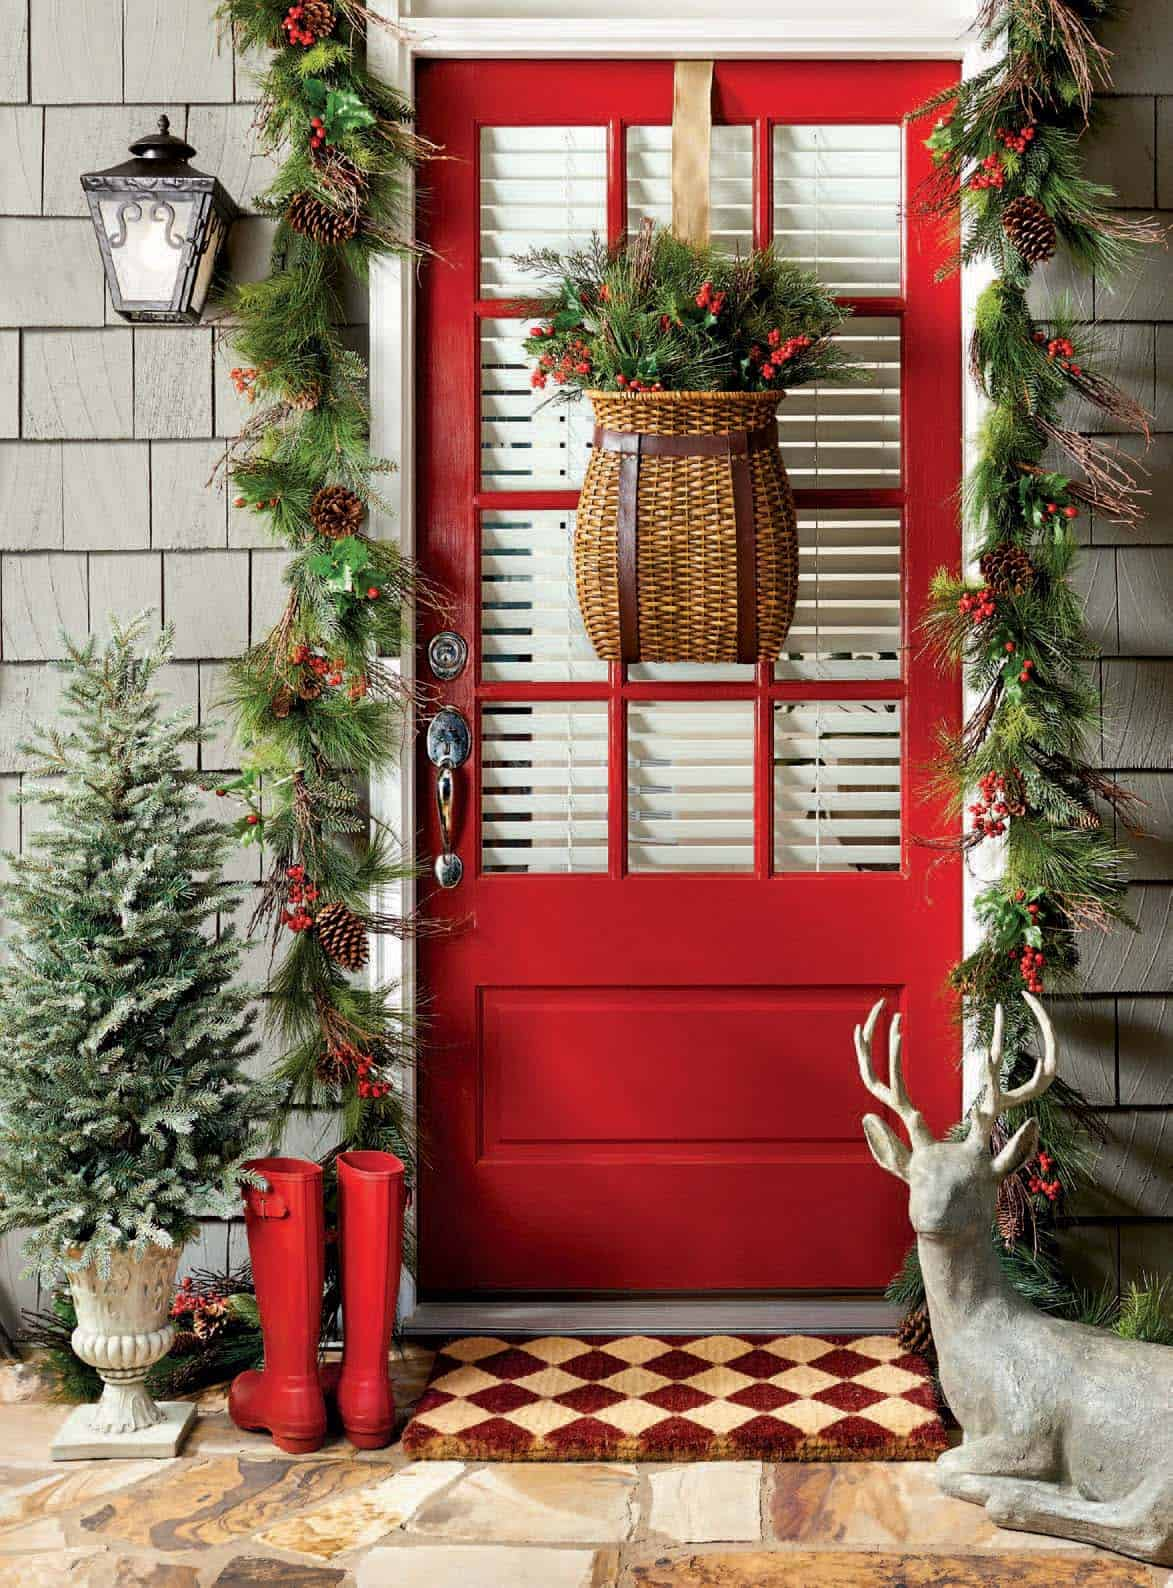 40 fabulous rustic country christmas decorating ideas for Christmas decorations